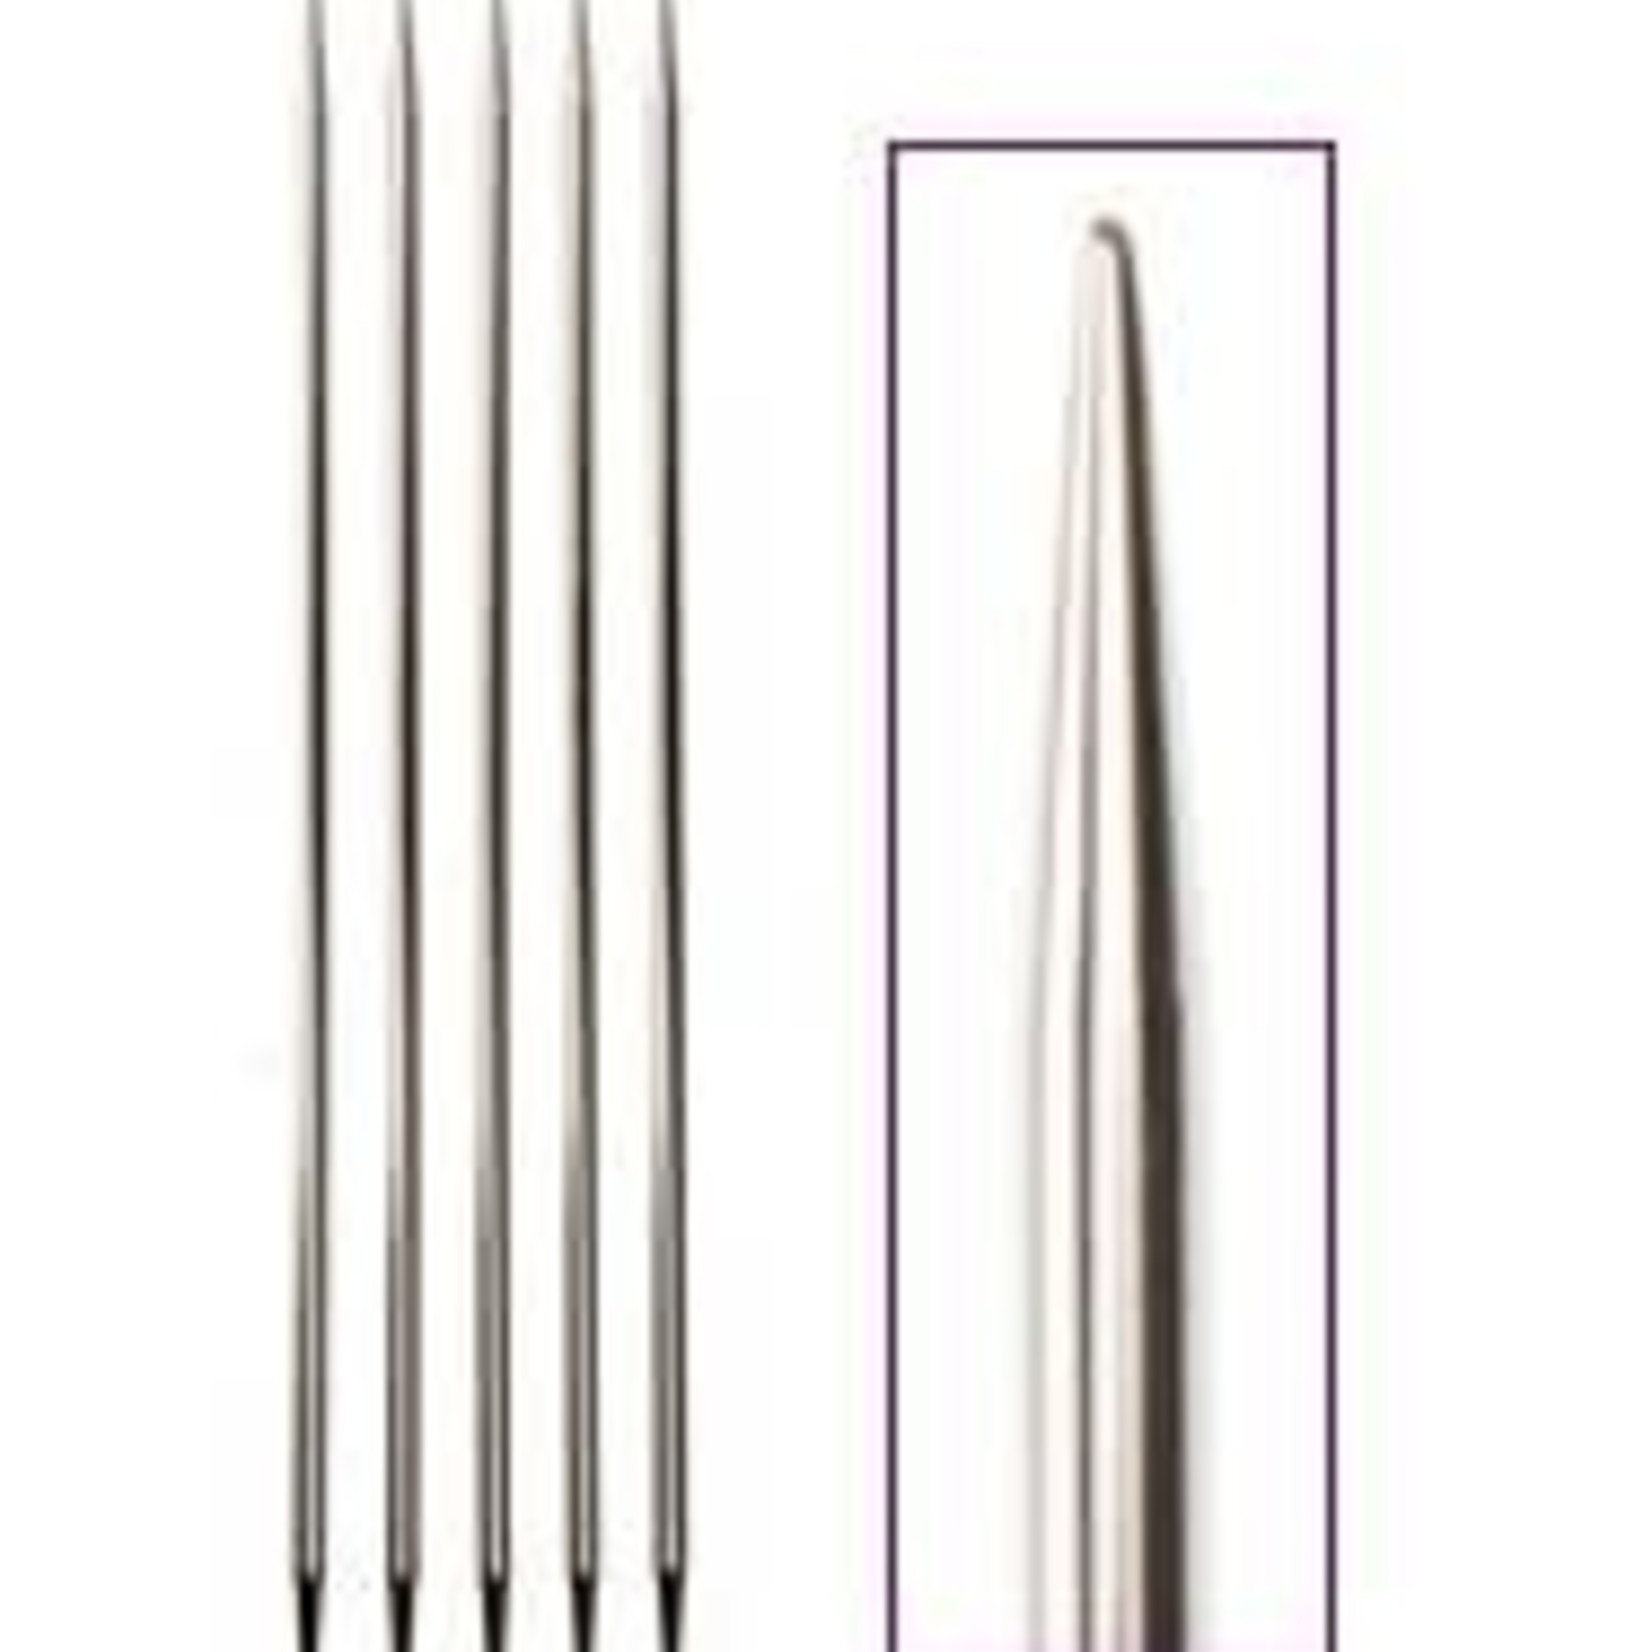 "Knit Picks KNIT PICKS Nickel Plated Double Point Knitting Needles 20cm (8"")"